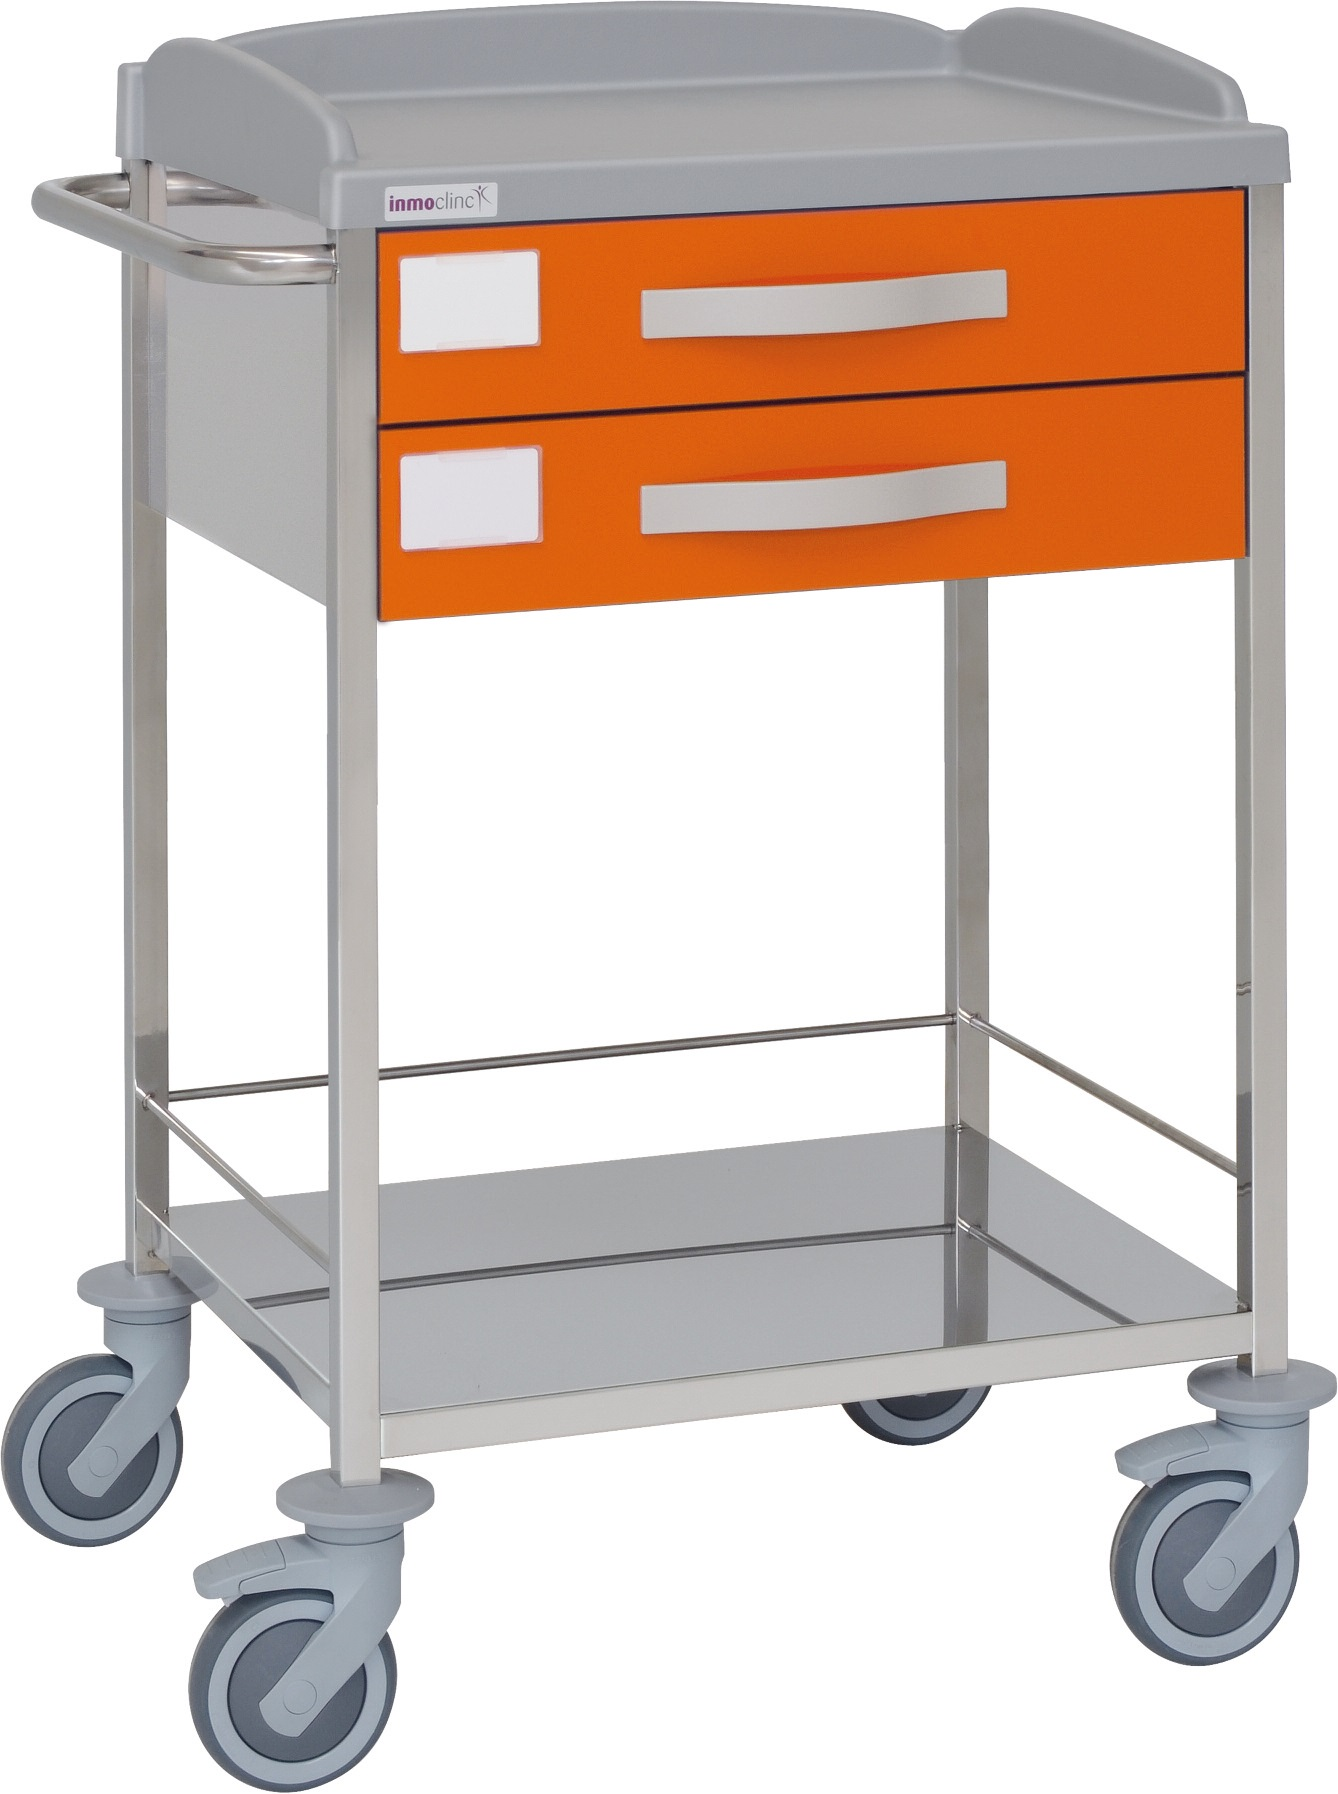 stainless steel shelves hospital trolley stainless steel structure inmoclinc 10510 10500